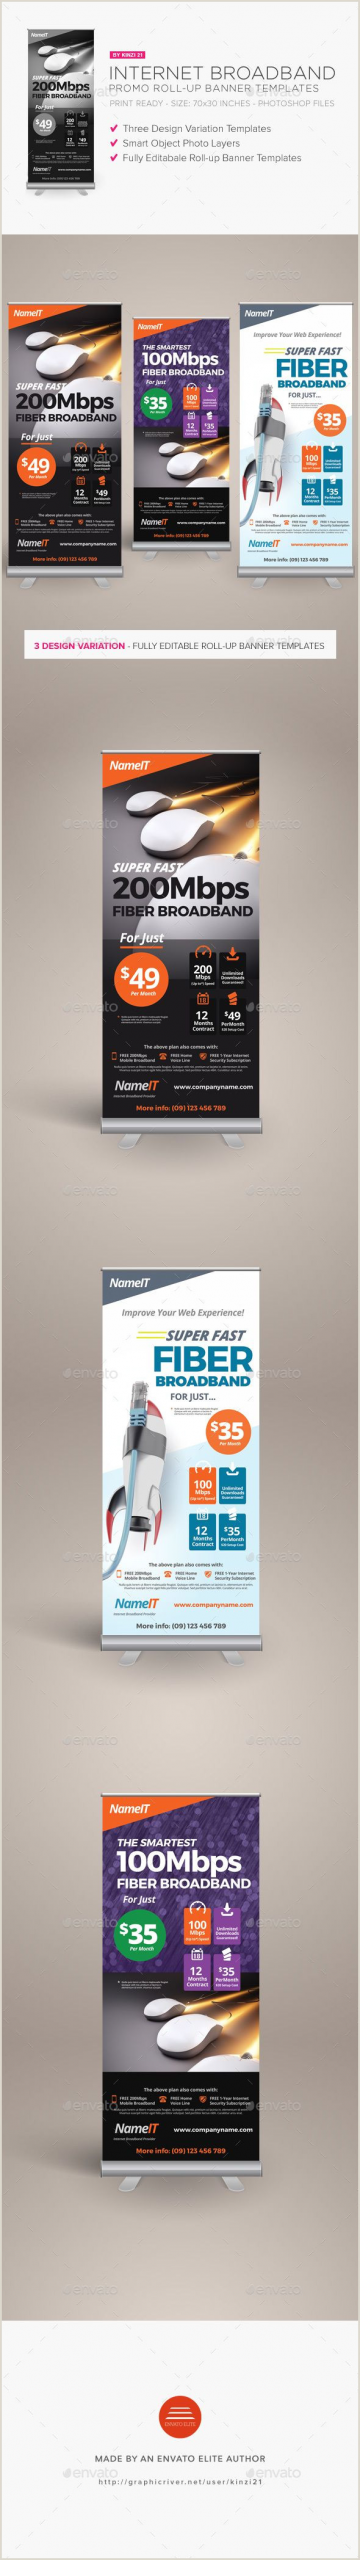 Promo Banner Stands Rollup Banner Templates Stylish Graphics